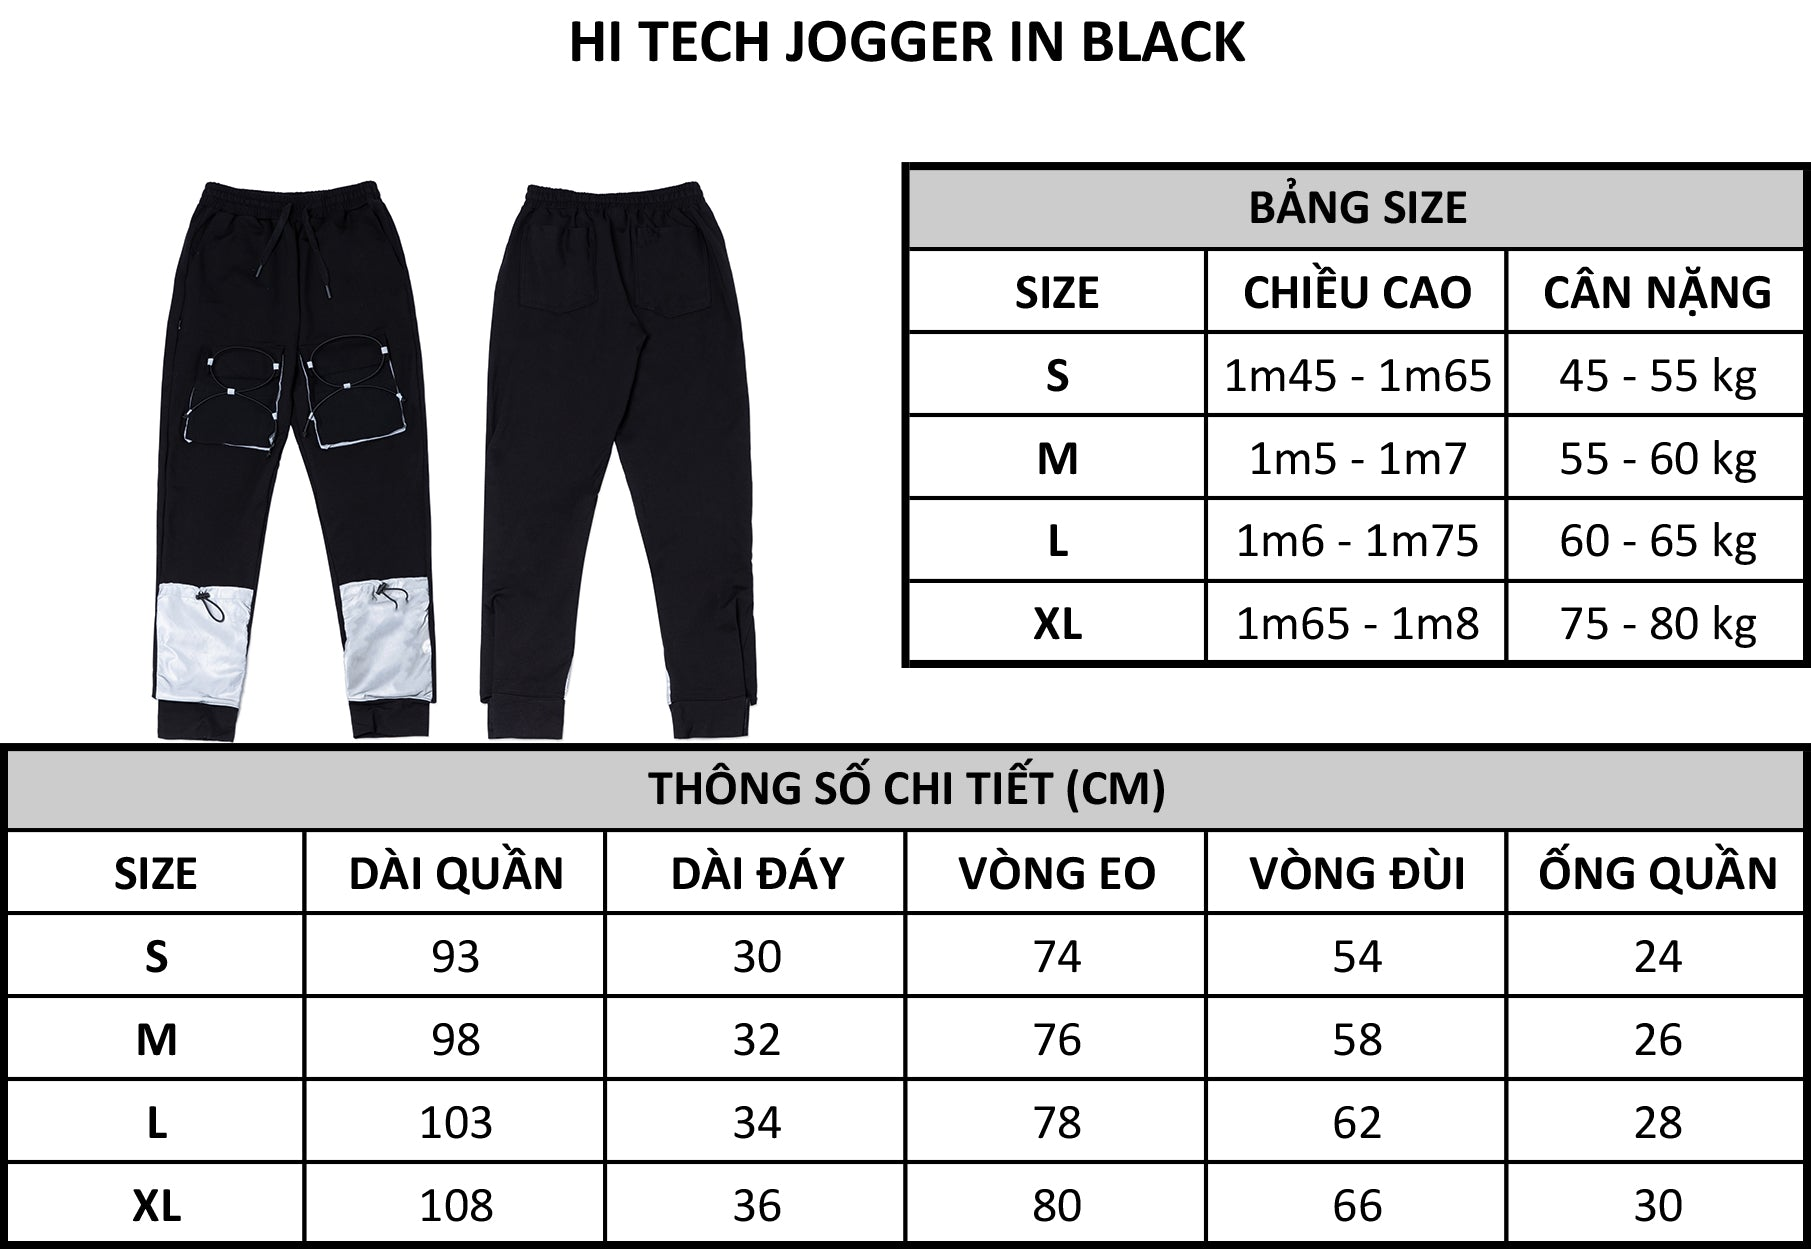 HI TECH JOGGER IN BLACK